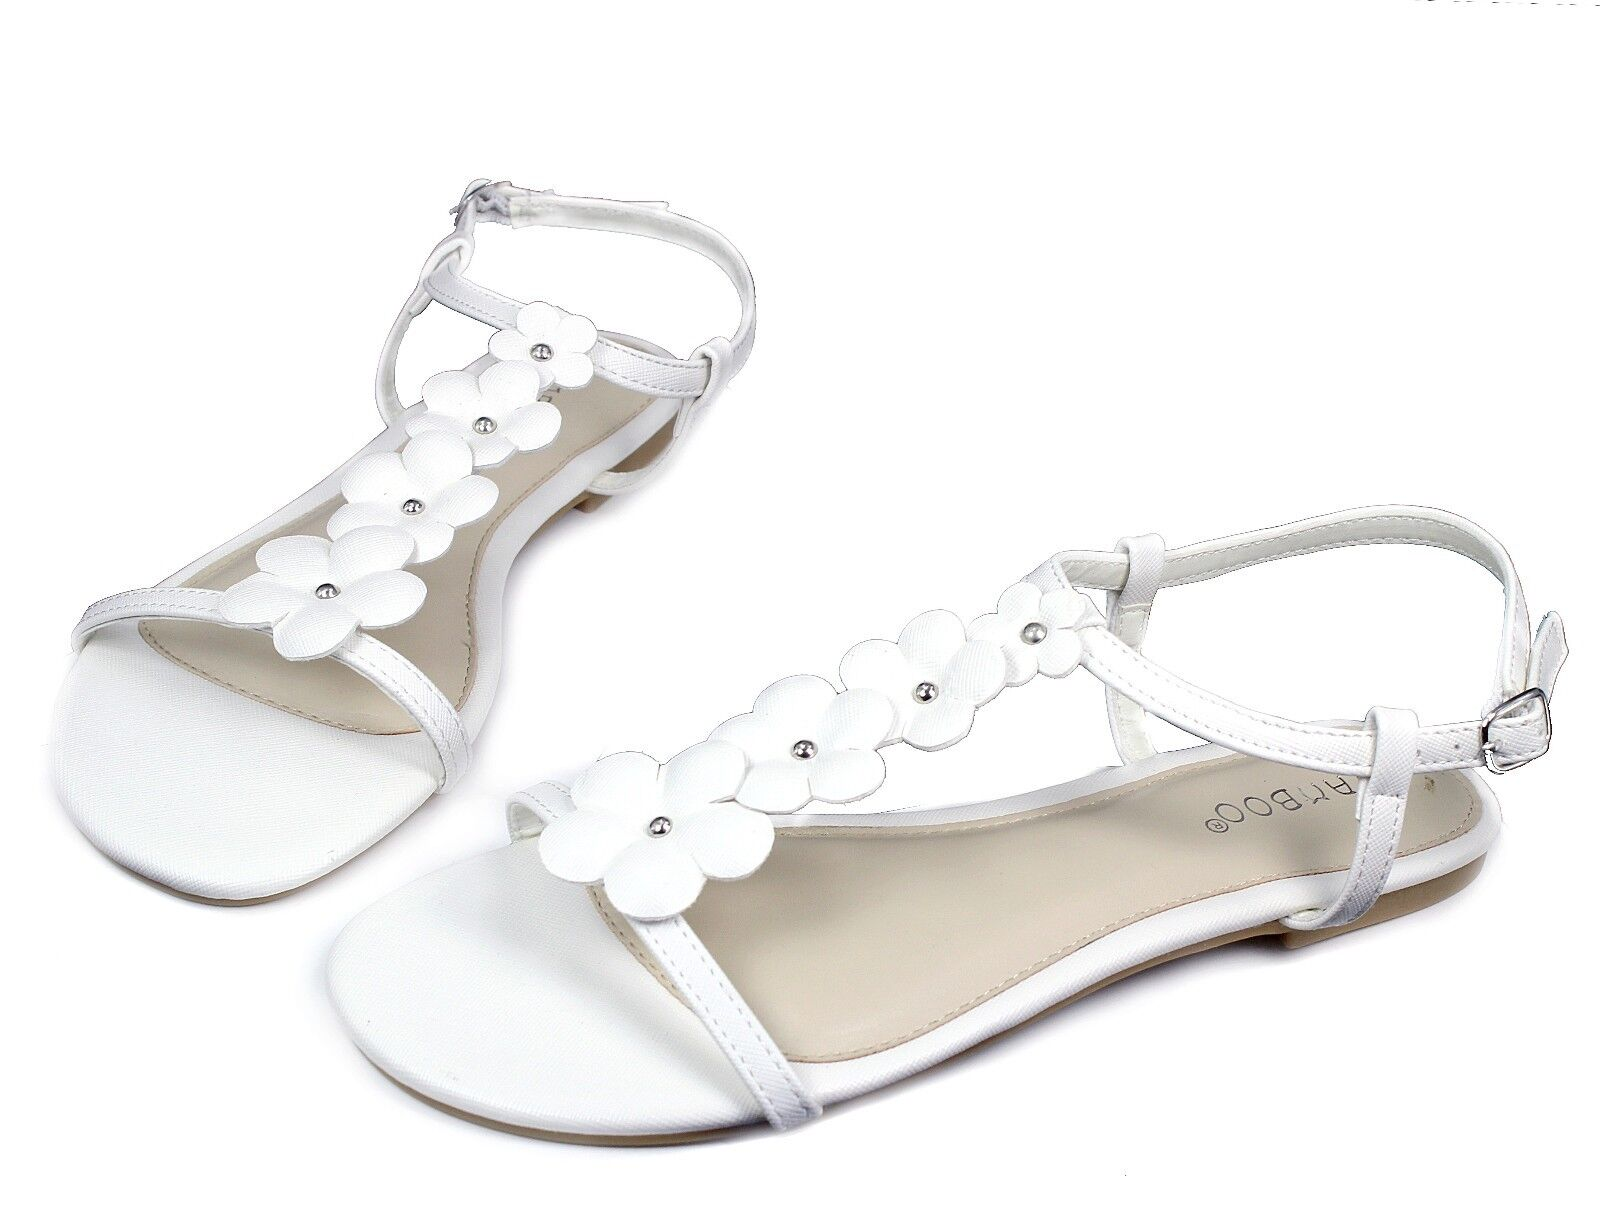 Gentlemen/Ladies Buckle CALEB-10 New Flats Sandals Buckle Gentlemen/Ladies Gladiator Party Beach Women Shoes White 7 quality Optimal price Beautiful and charming GB648 a00688